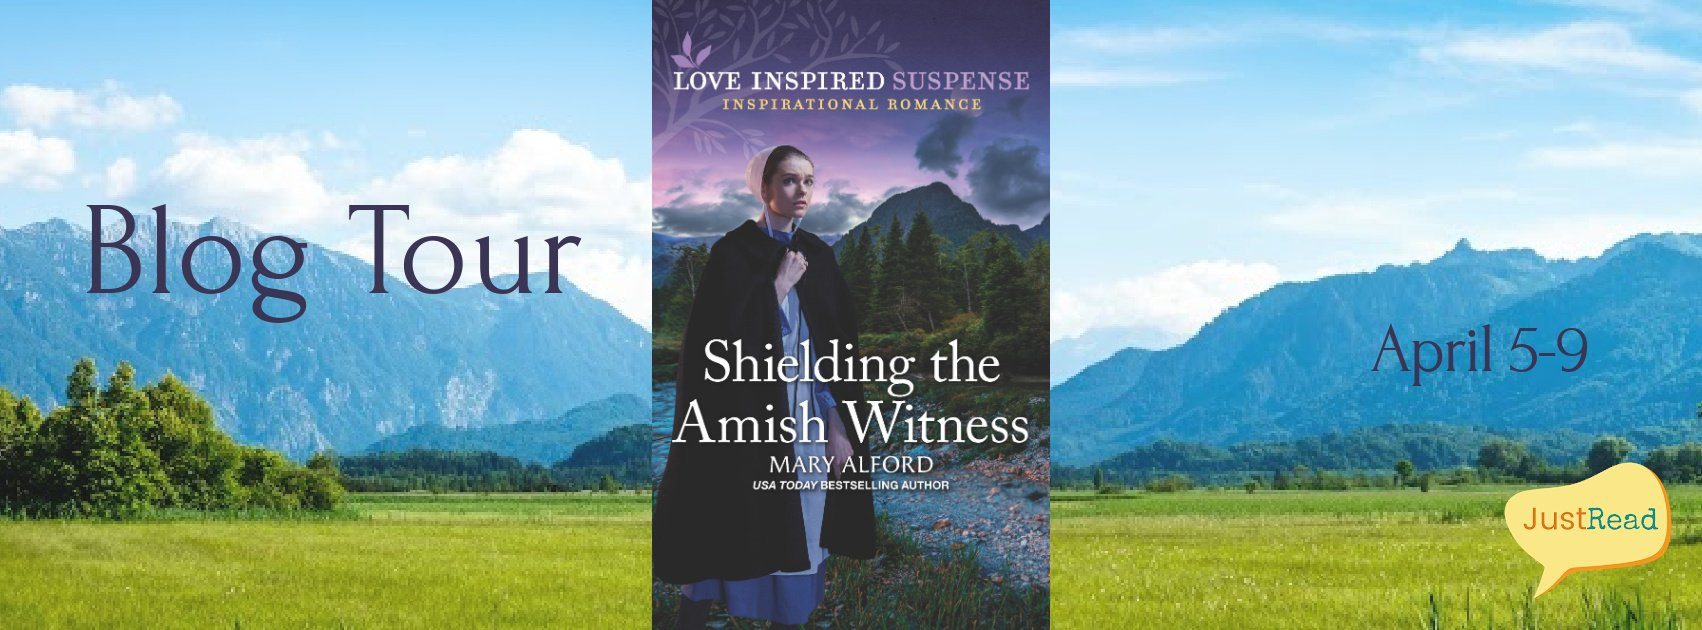 Welcome to the Shielding the Amish Witness Blog Tour & Giveaway!